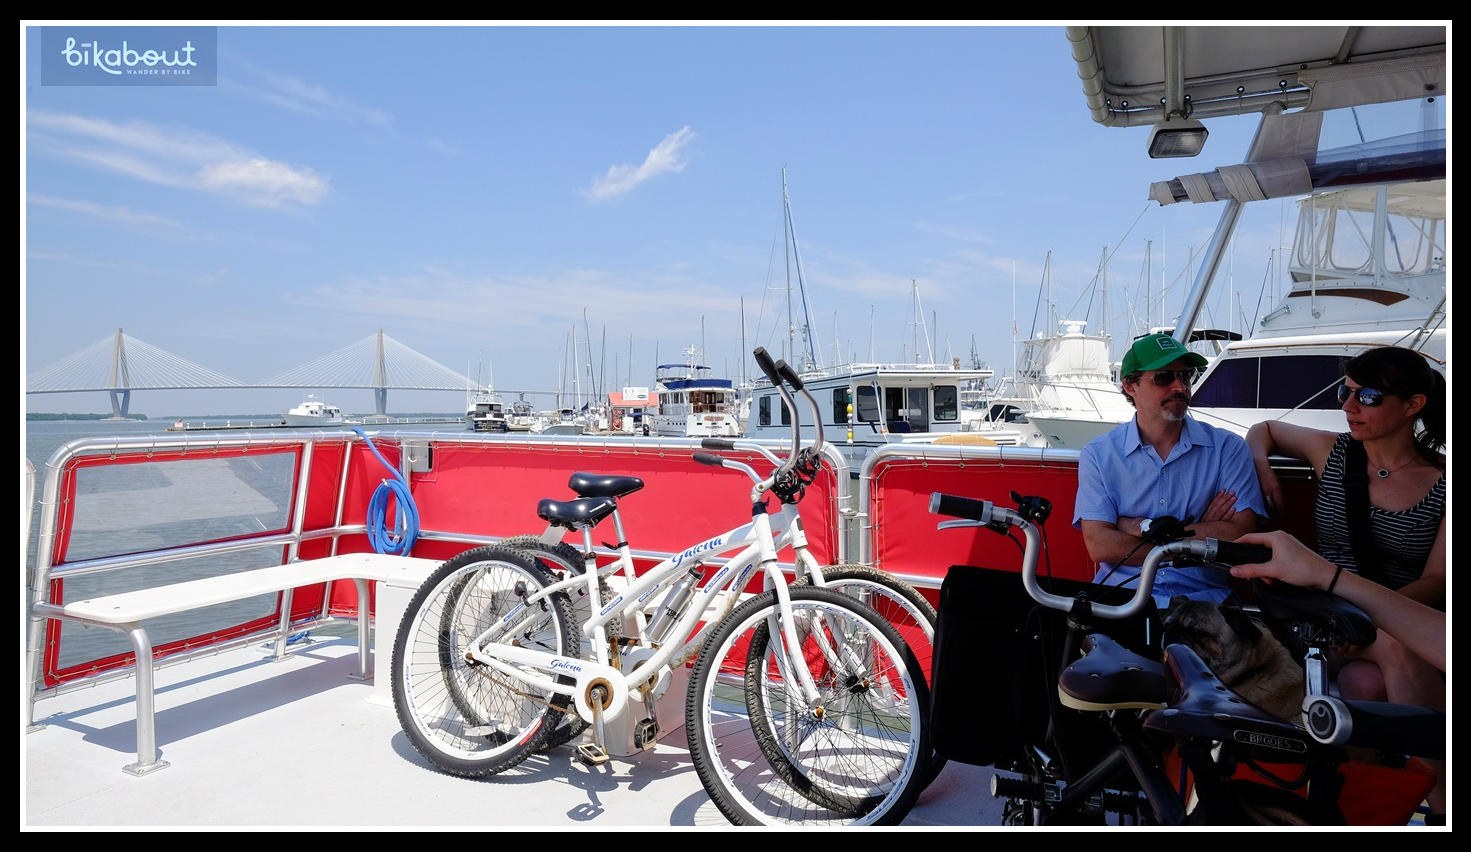 Water Taxi is bike friendly and cuts your distance in half